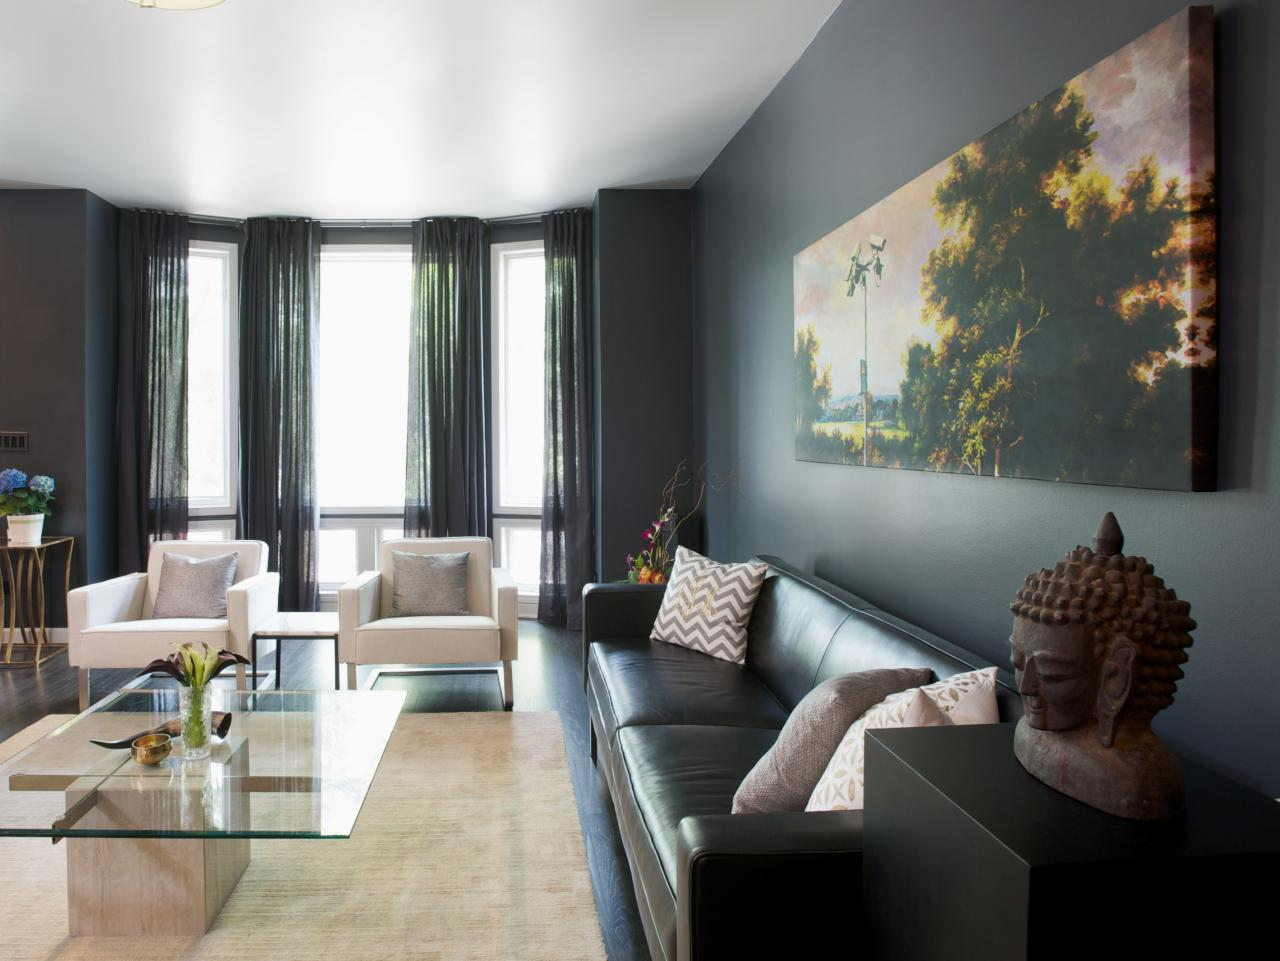 Add Drama to Your Home With Dark, Moody Colors | HGTV\'s ...